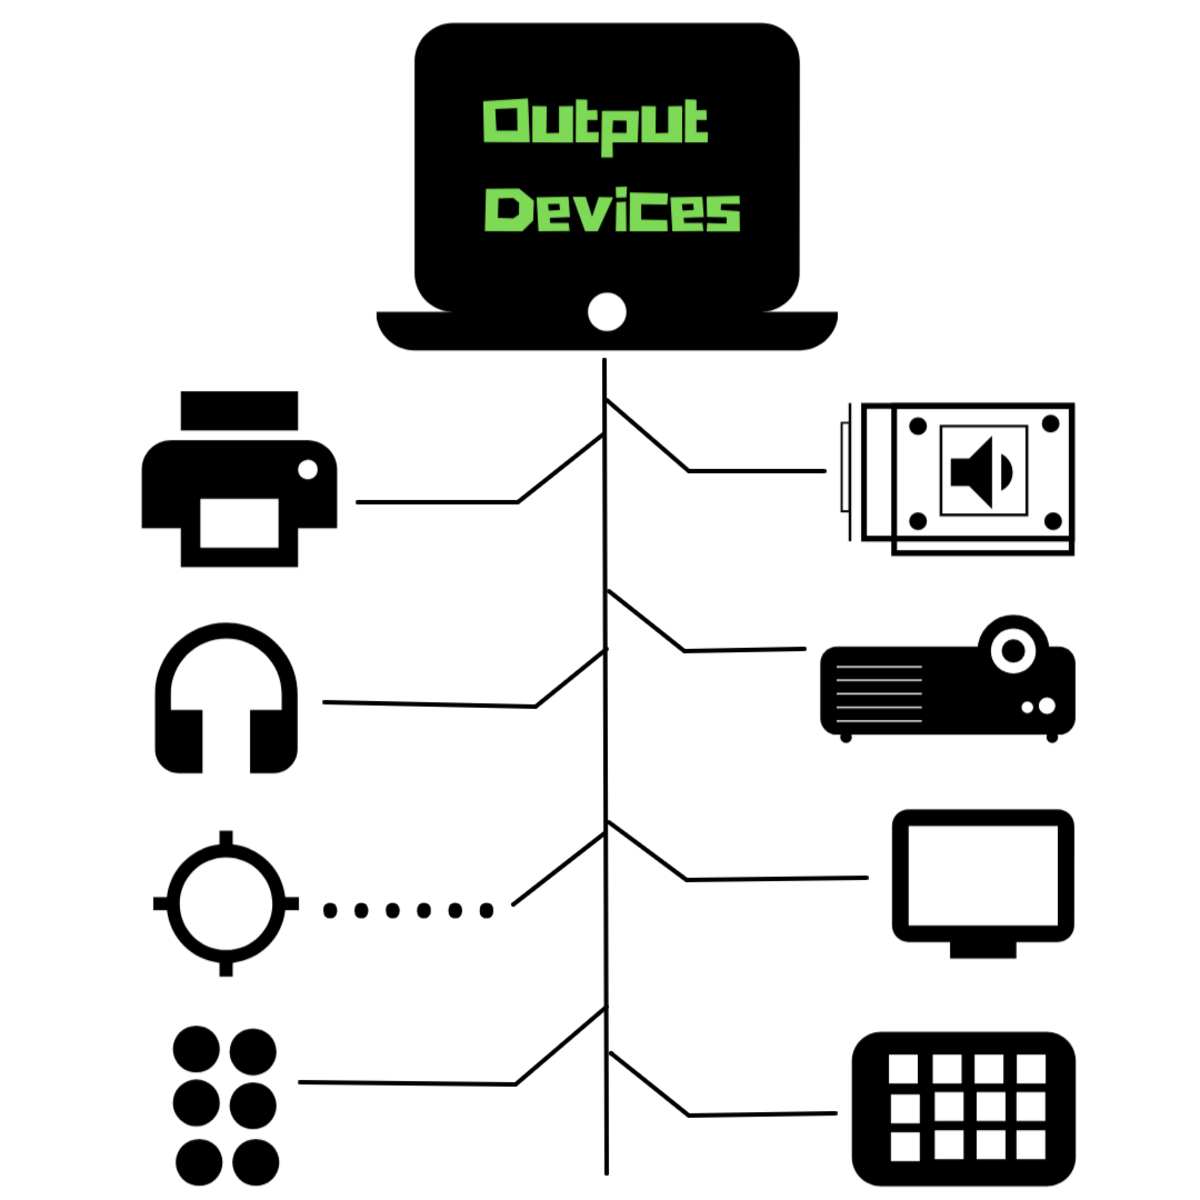 Computer Basics: What Is an Output Device? 10 Examples